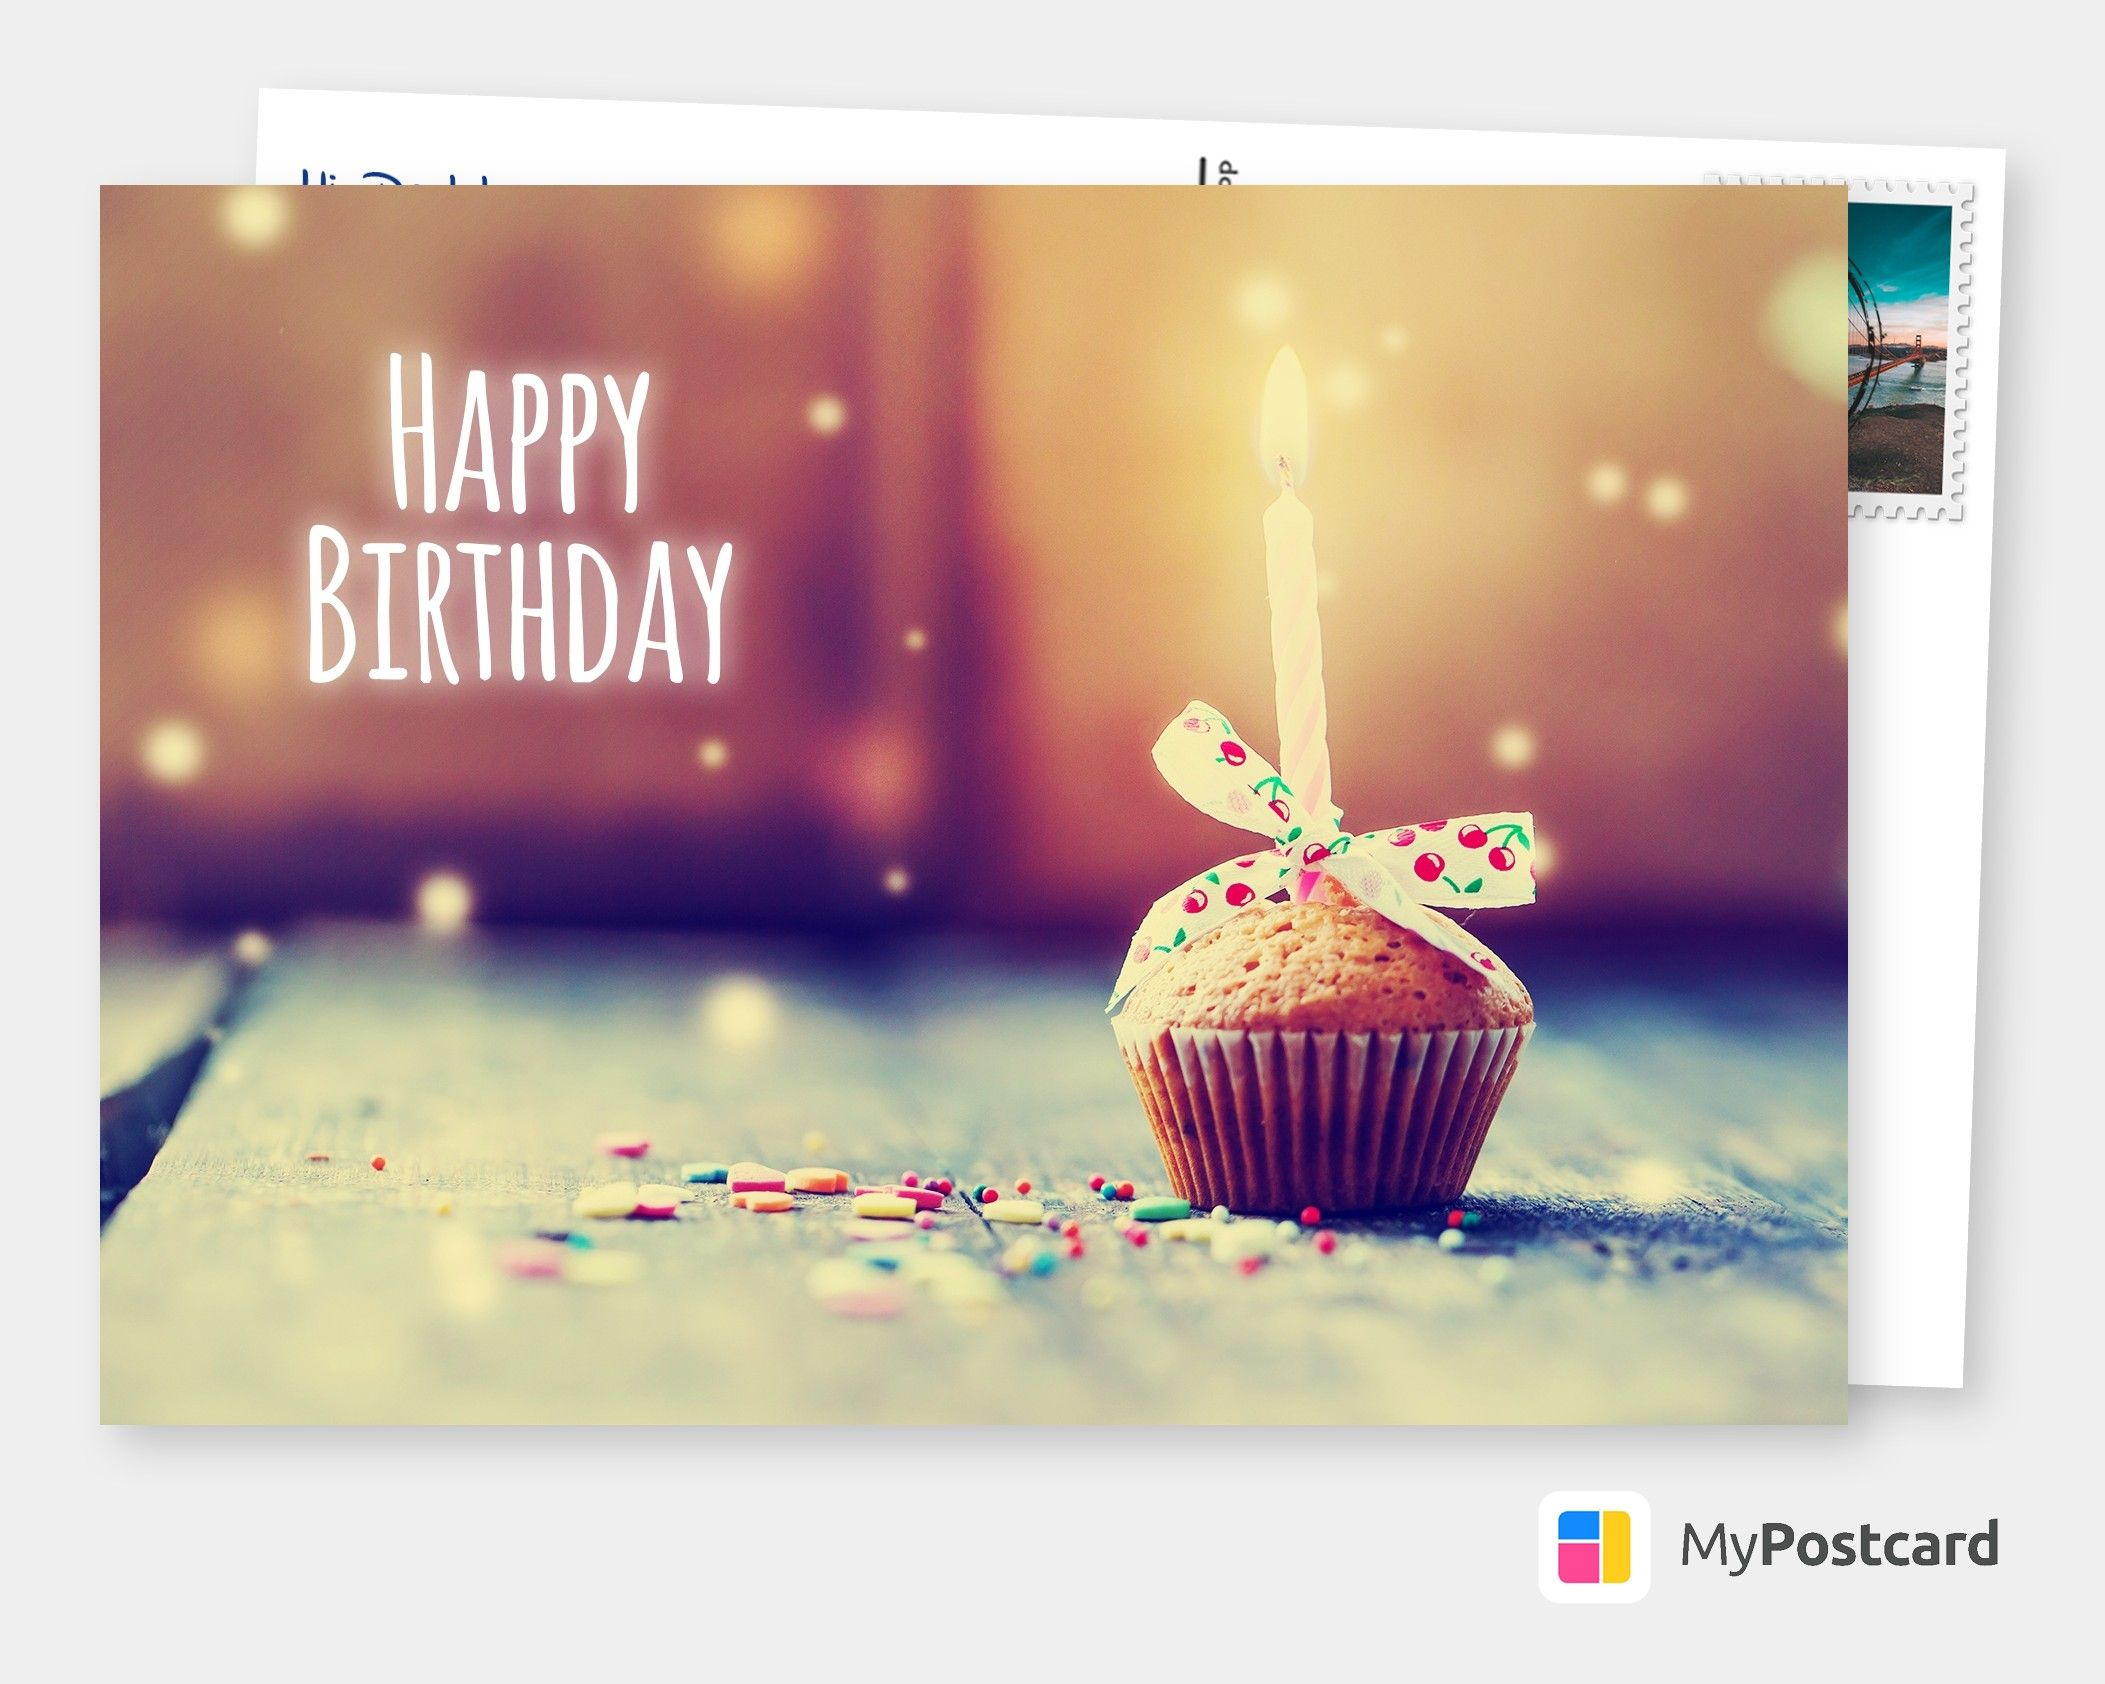 Customized Birthday Cards Online Printed Mailed For You Internationally Printable Birthday Cards Send Online Internationally Free Shipping Internationa Birthday Card Online Birthday Card Printable Birthday Card With Photo